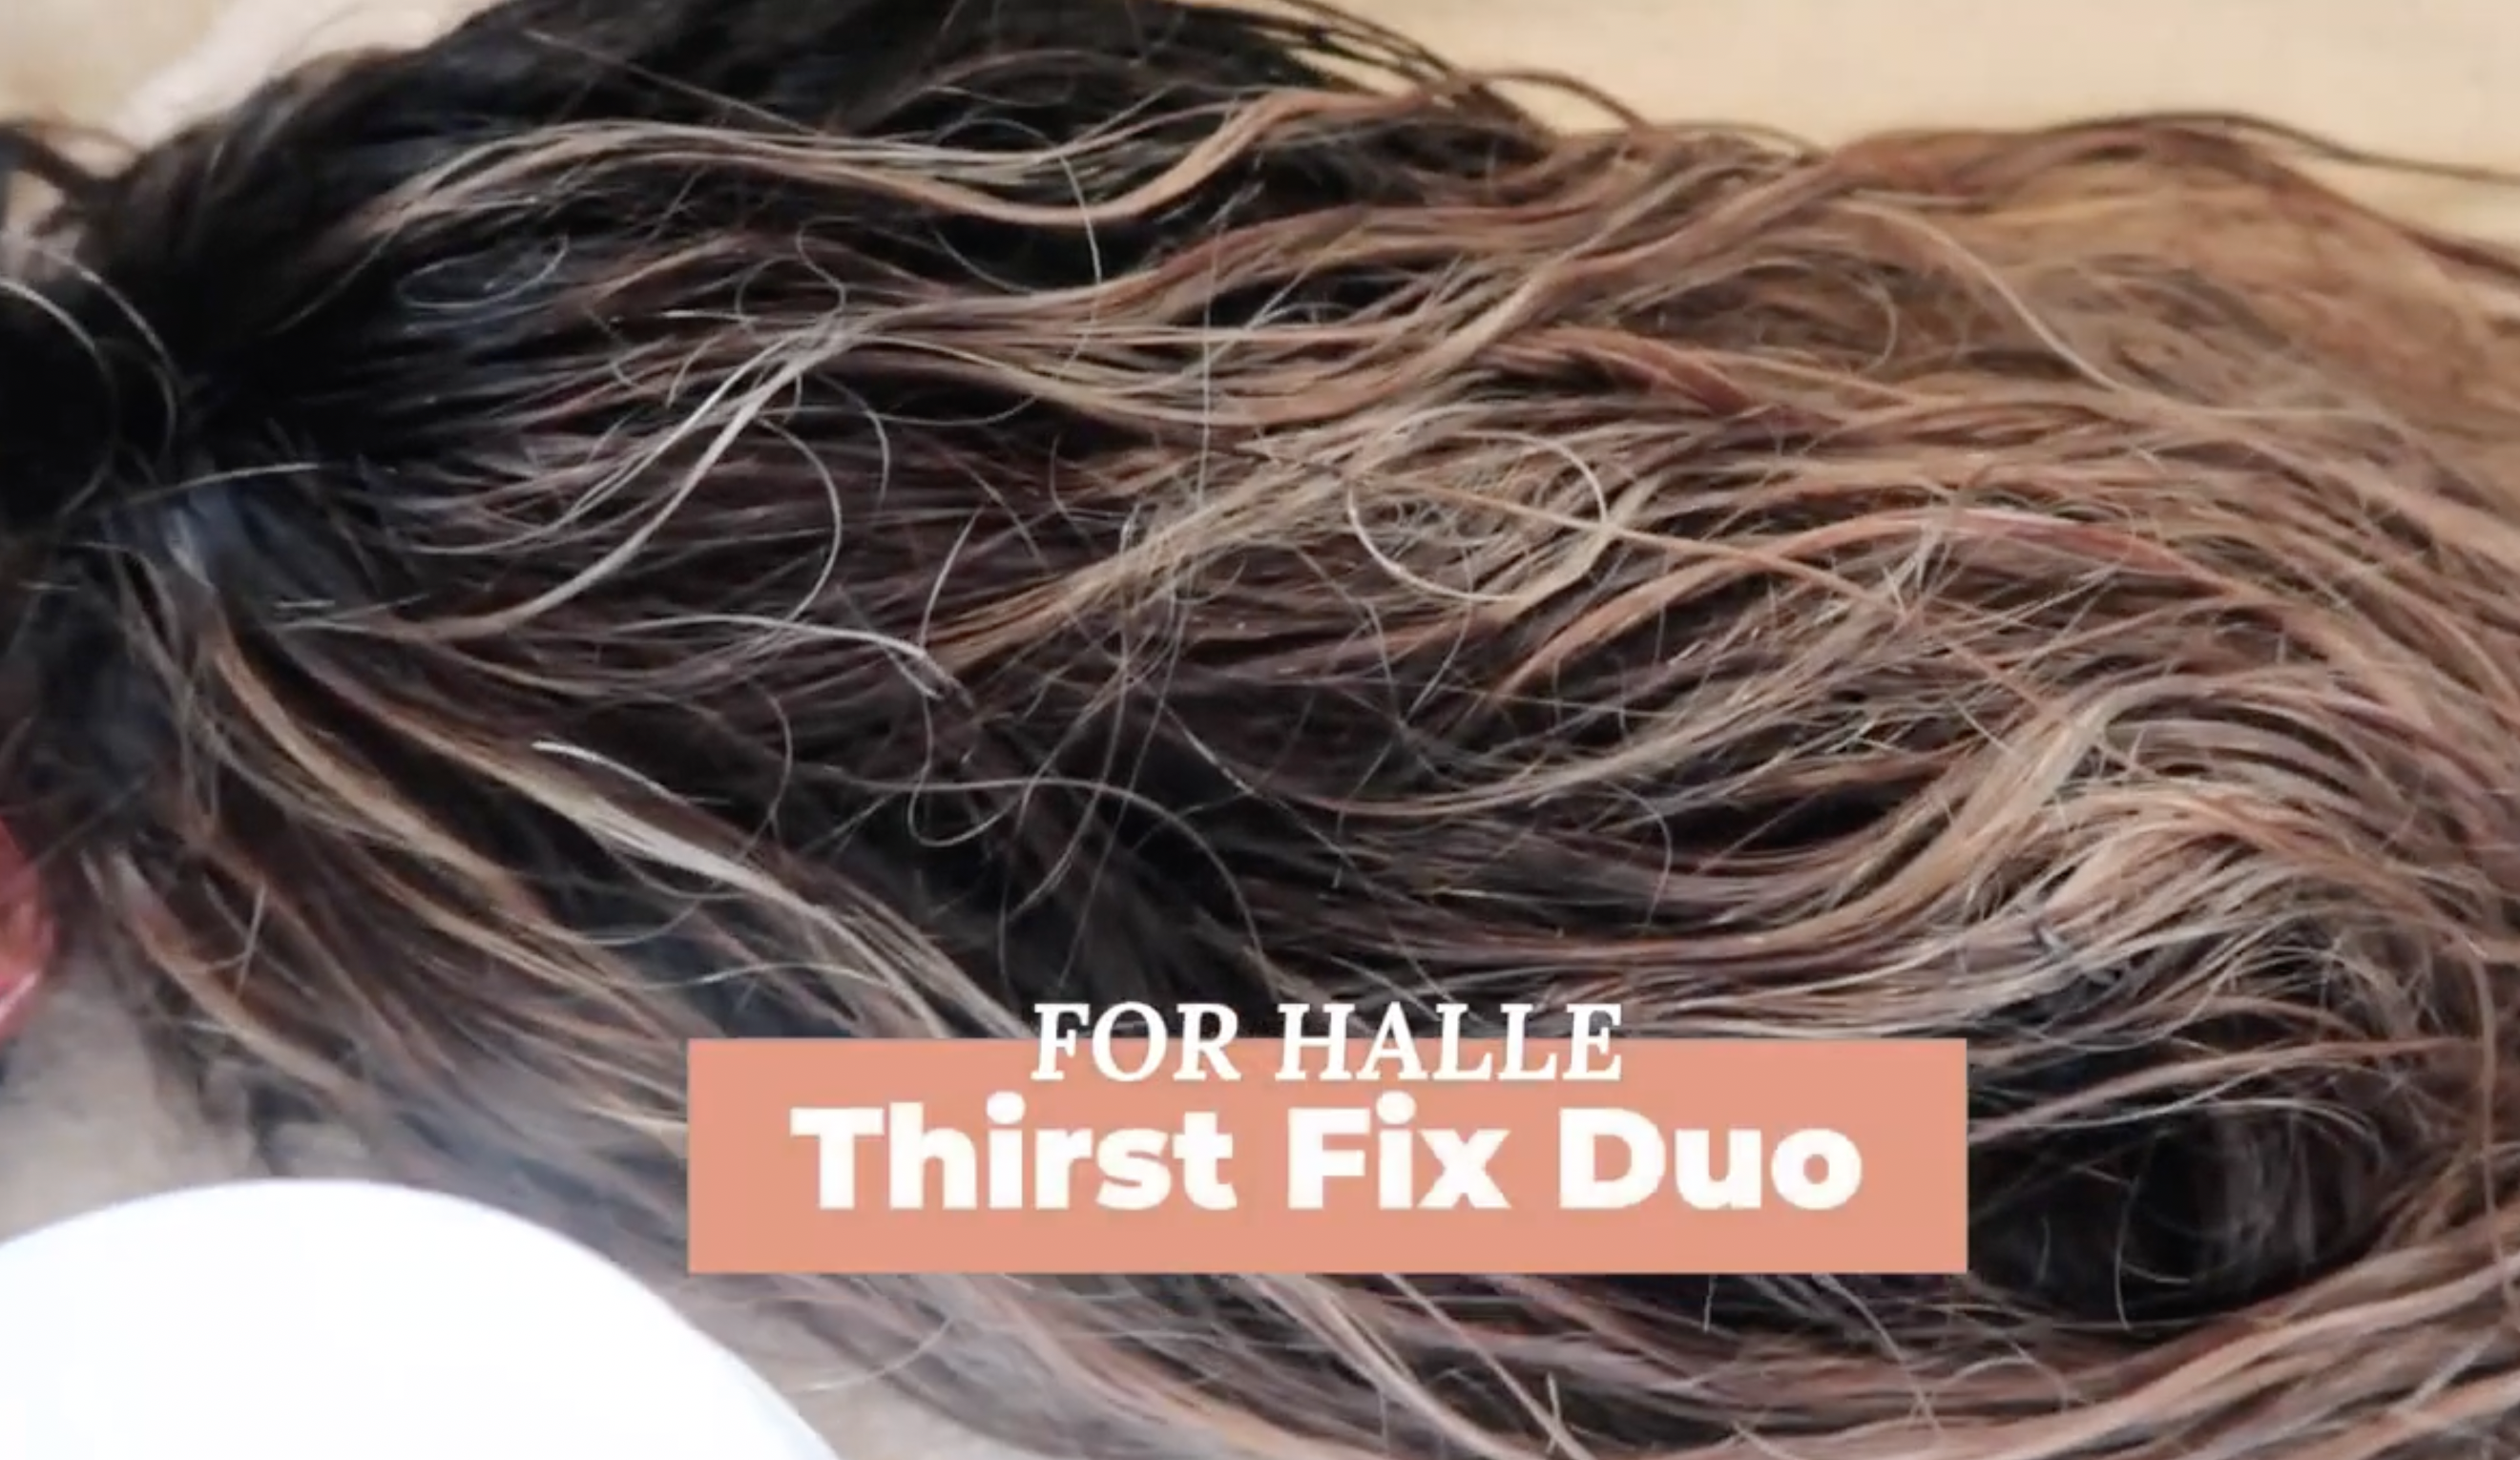 forhalle reviews for coloured hair